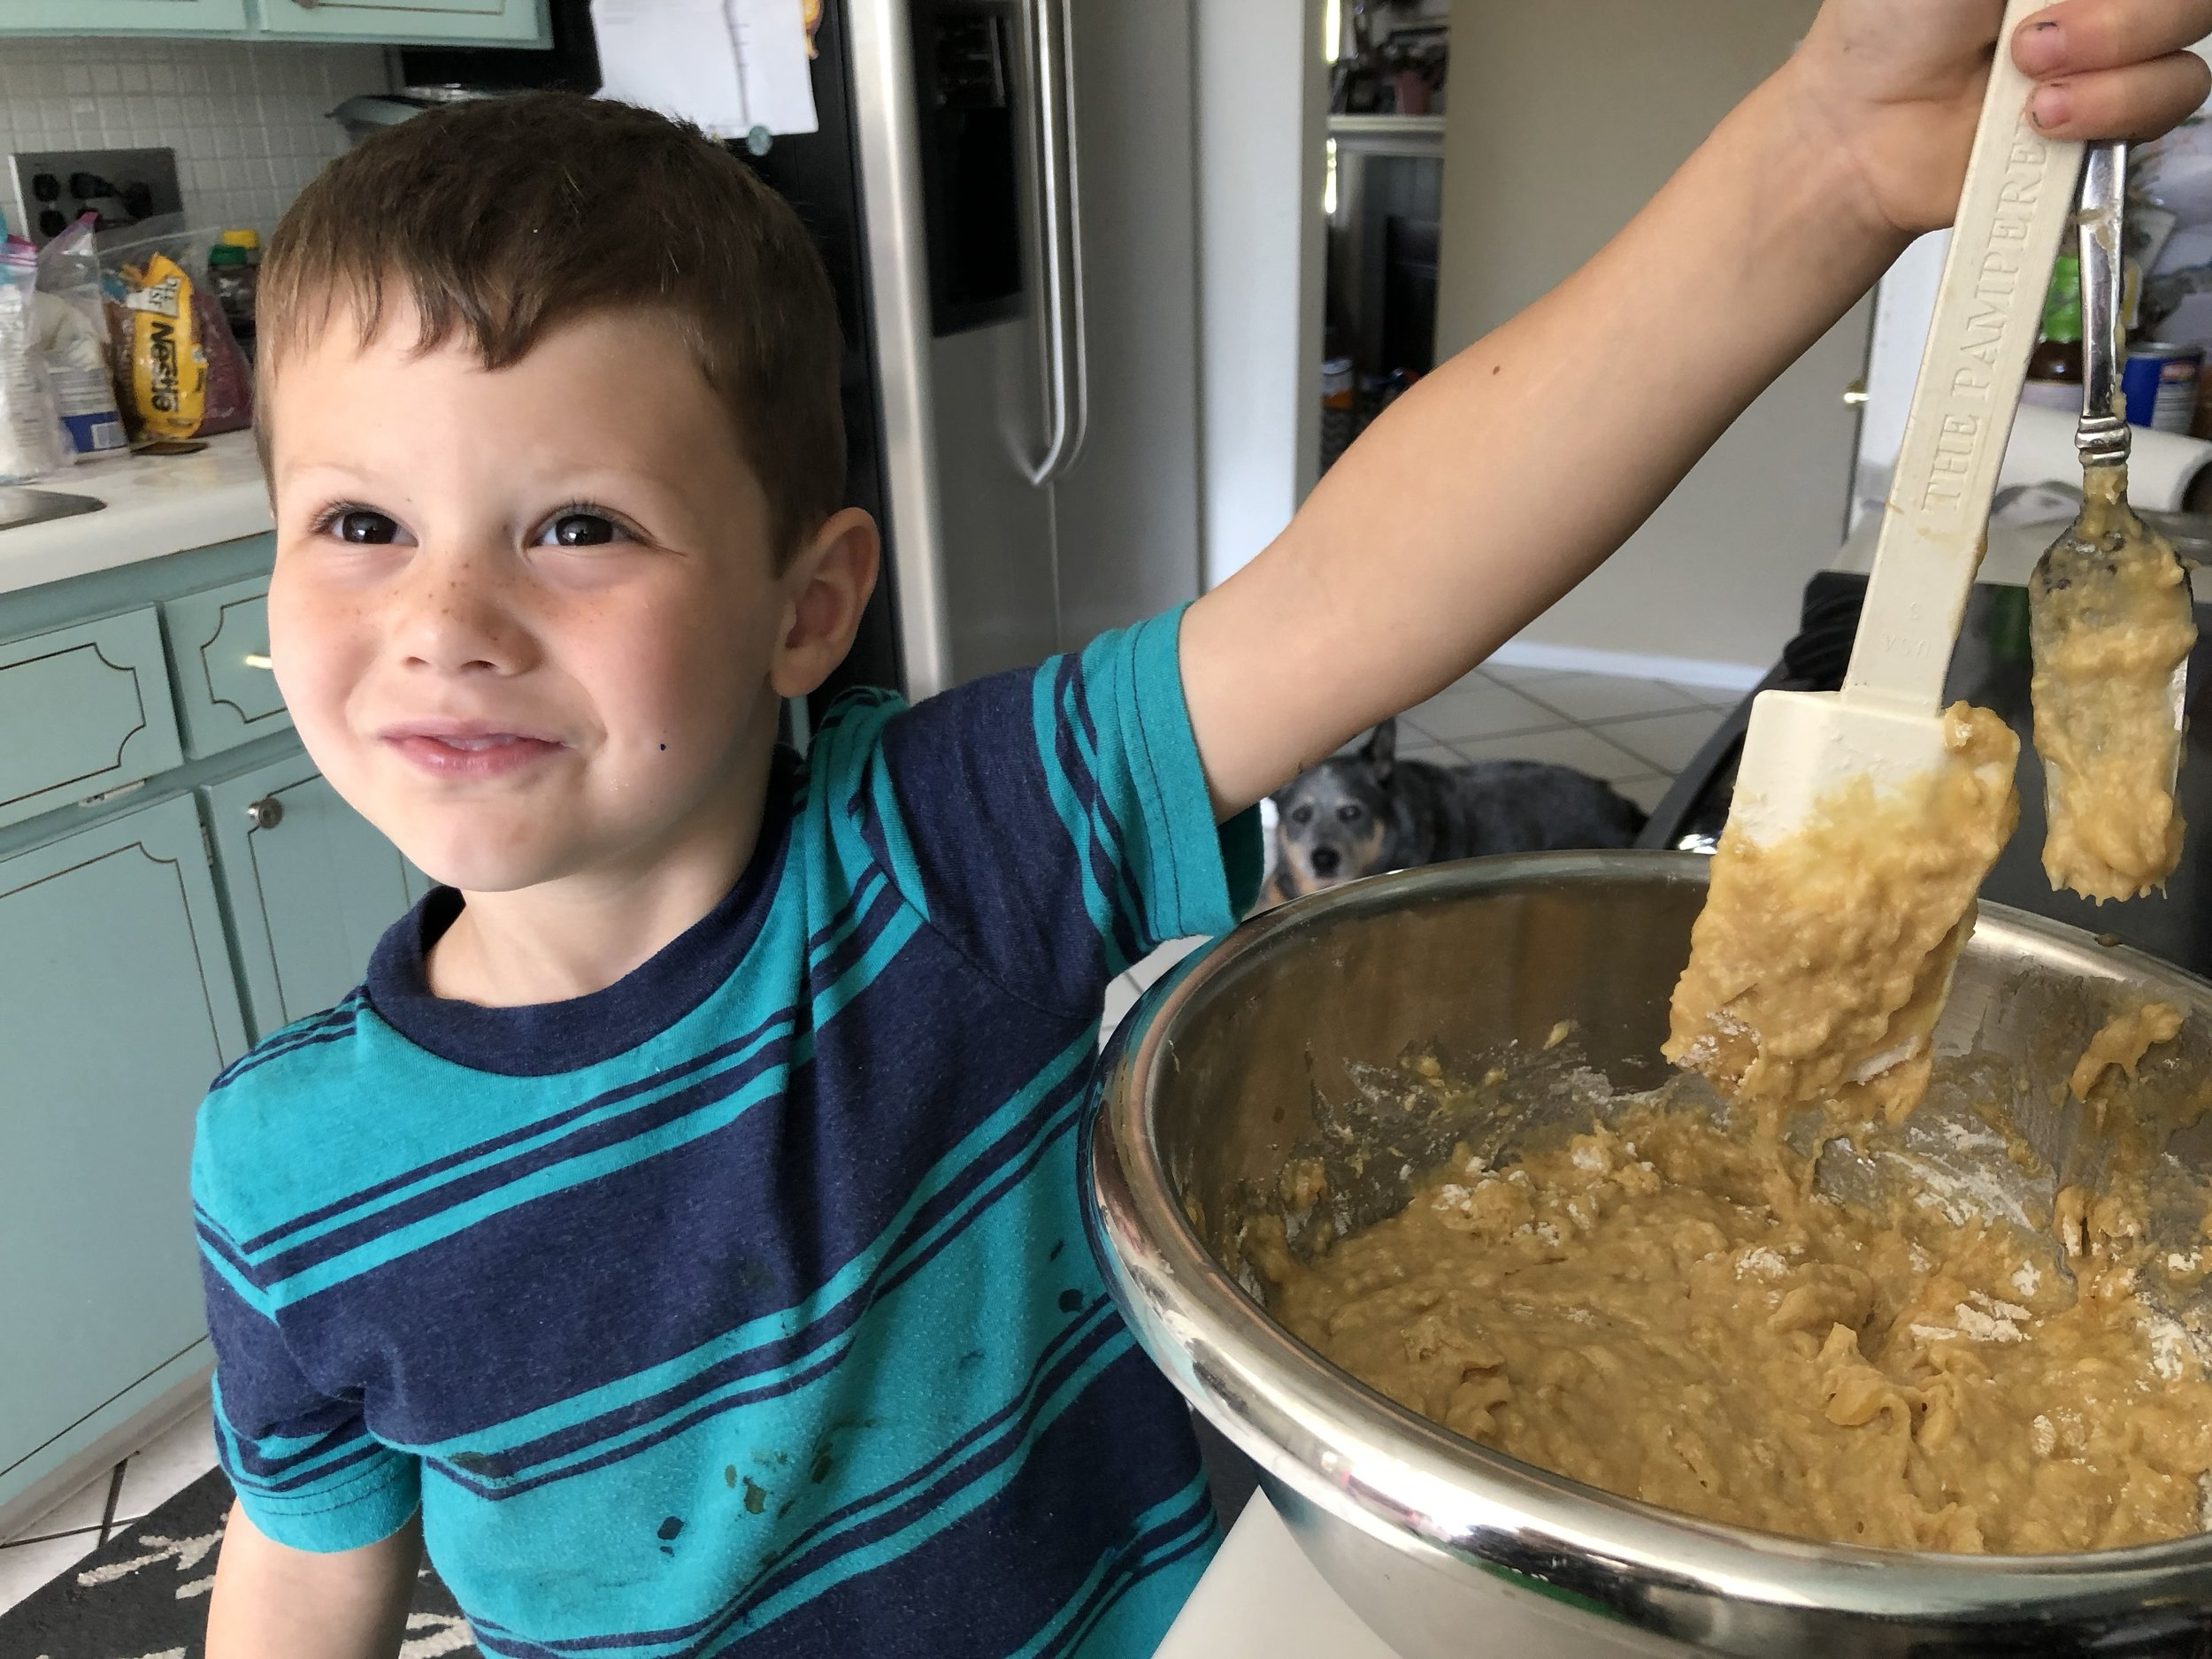 Mix batter - Pancake, cookie, quick bread, even quiche. Allow your kids to do the mixing, whisking and even beating. Whether by hand or with an electric mixer, your kids will love to mix it up. You just need to provide ground rules first and check for understanding before handing over the tool.